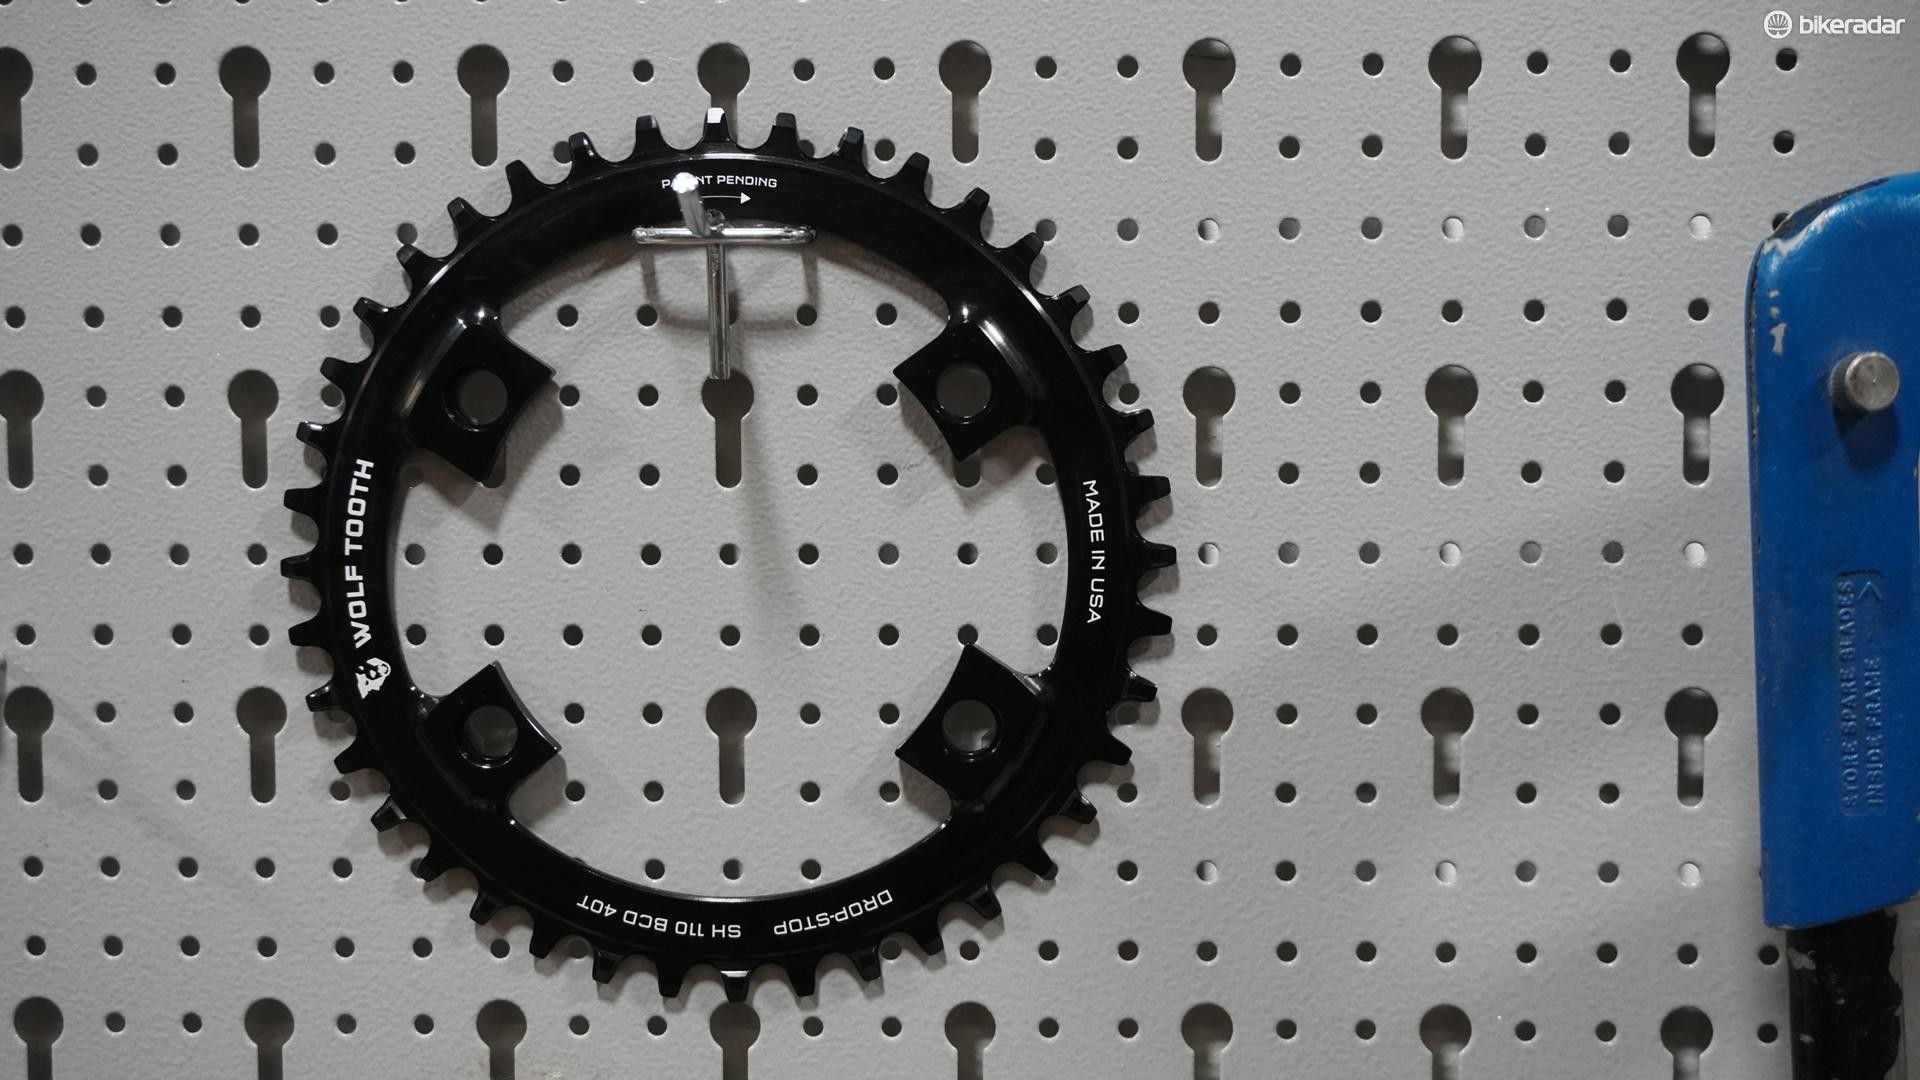 Got a 110 BCD crankset? This is the chainring for you